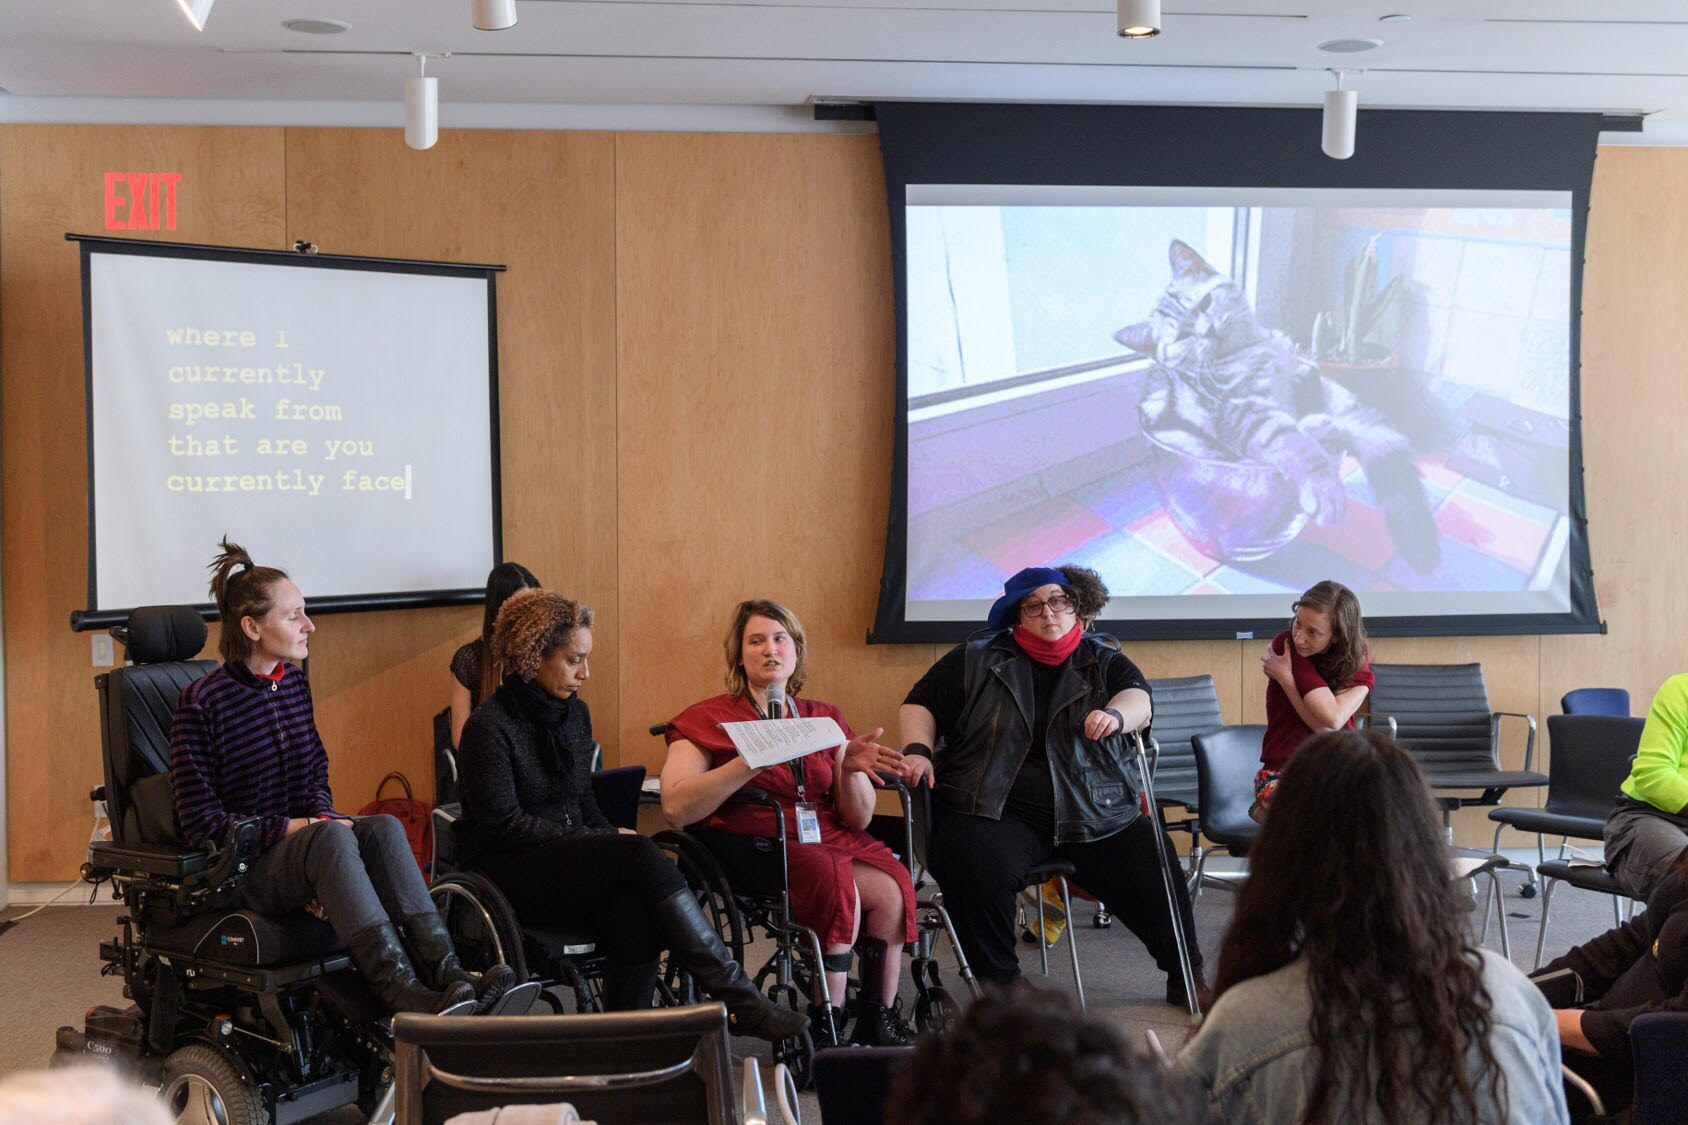 2019, The Whitney Museum hosted a day long conversation as part of and in collaboration with Performance Space's  I Wanna be with You Everywhere.  Featured in the image are Park McArthur, Alice Sheppard, Madison Zalopany, Constantina Zavitsanos, and Amalle Dublon. Photo credit Filip Wolak